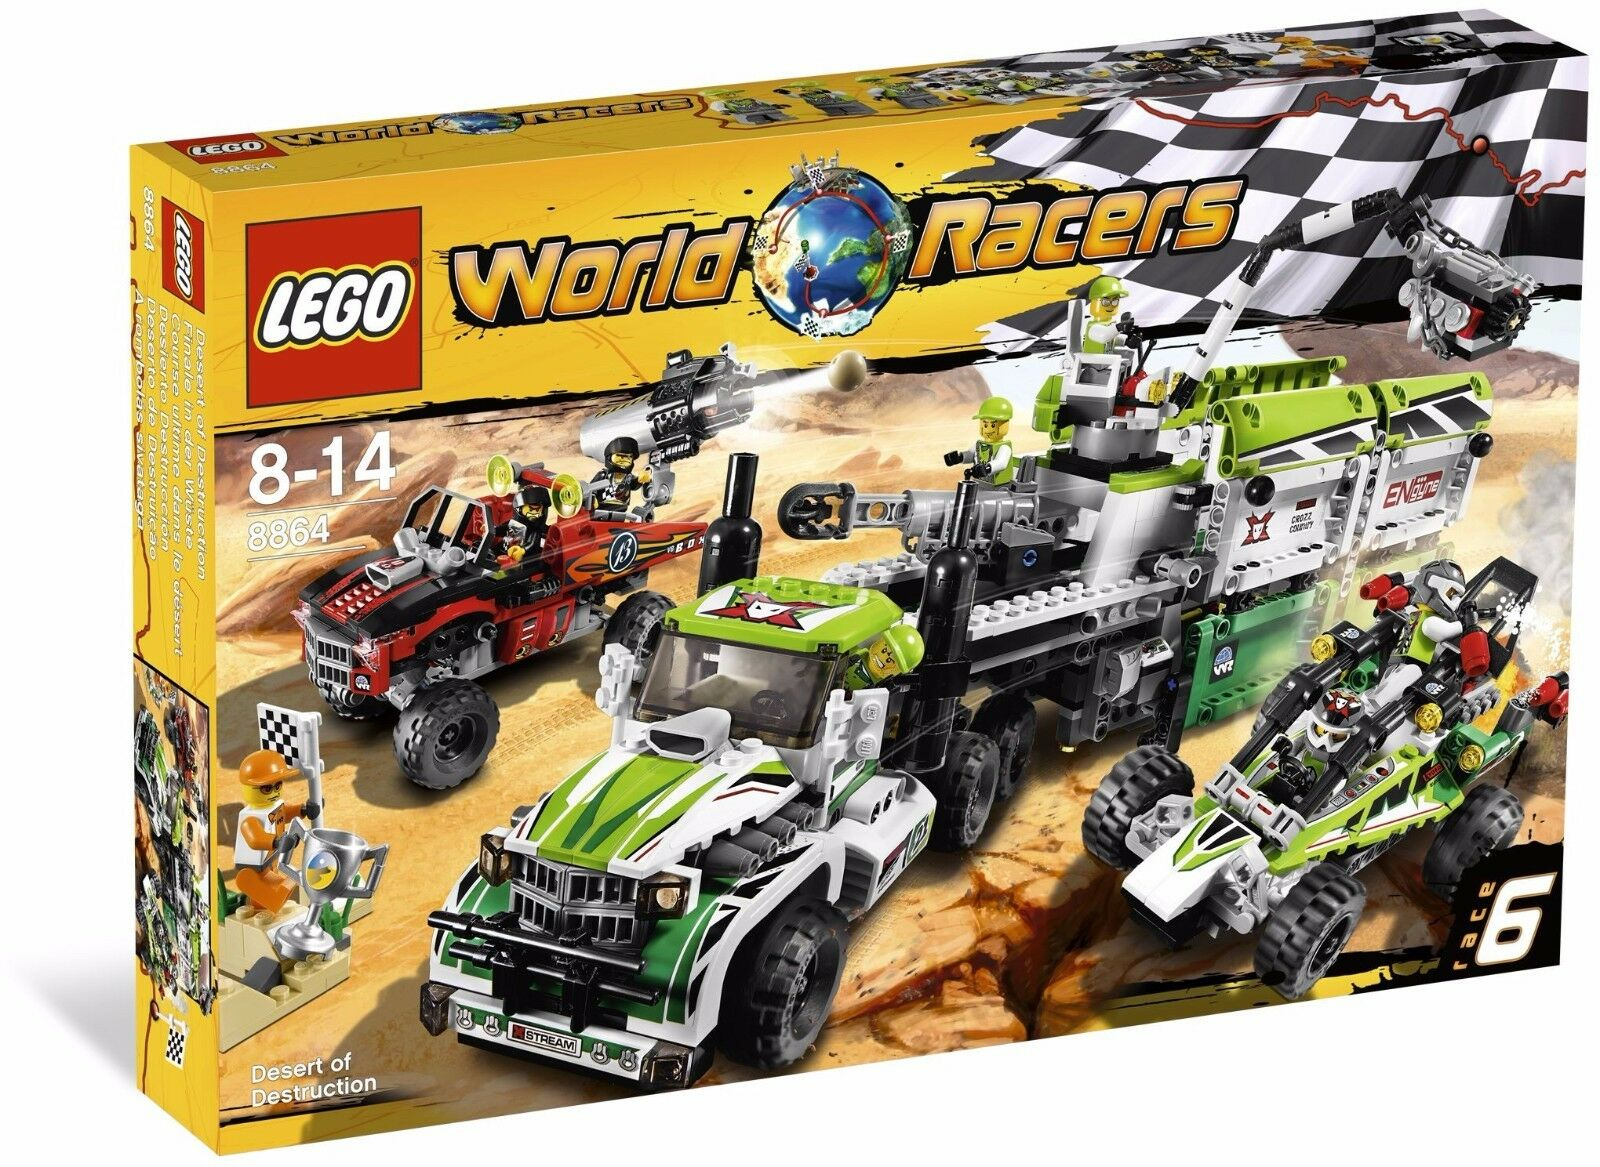 LEGO World Racer 8864 Desert of Destruction BNIB retirosso set cars